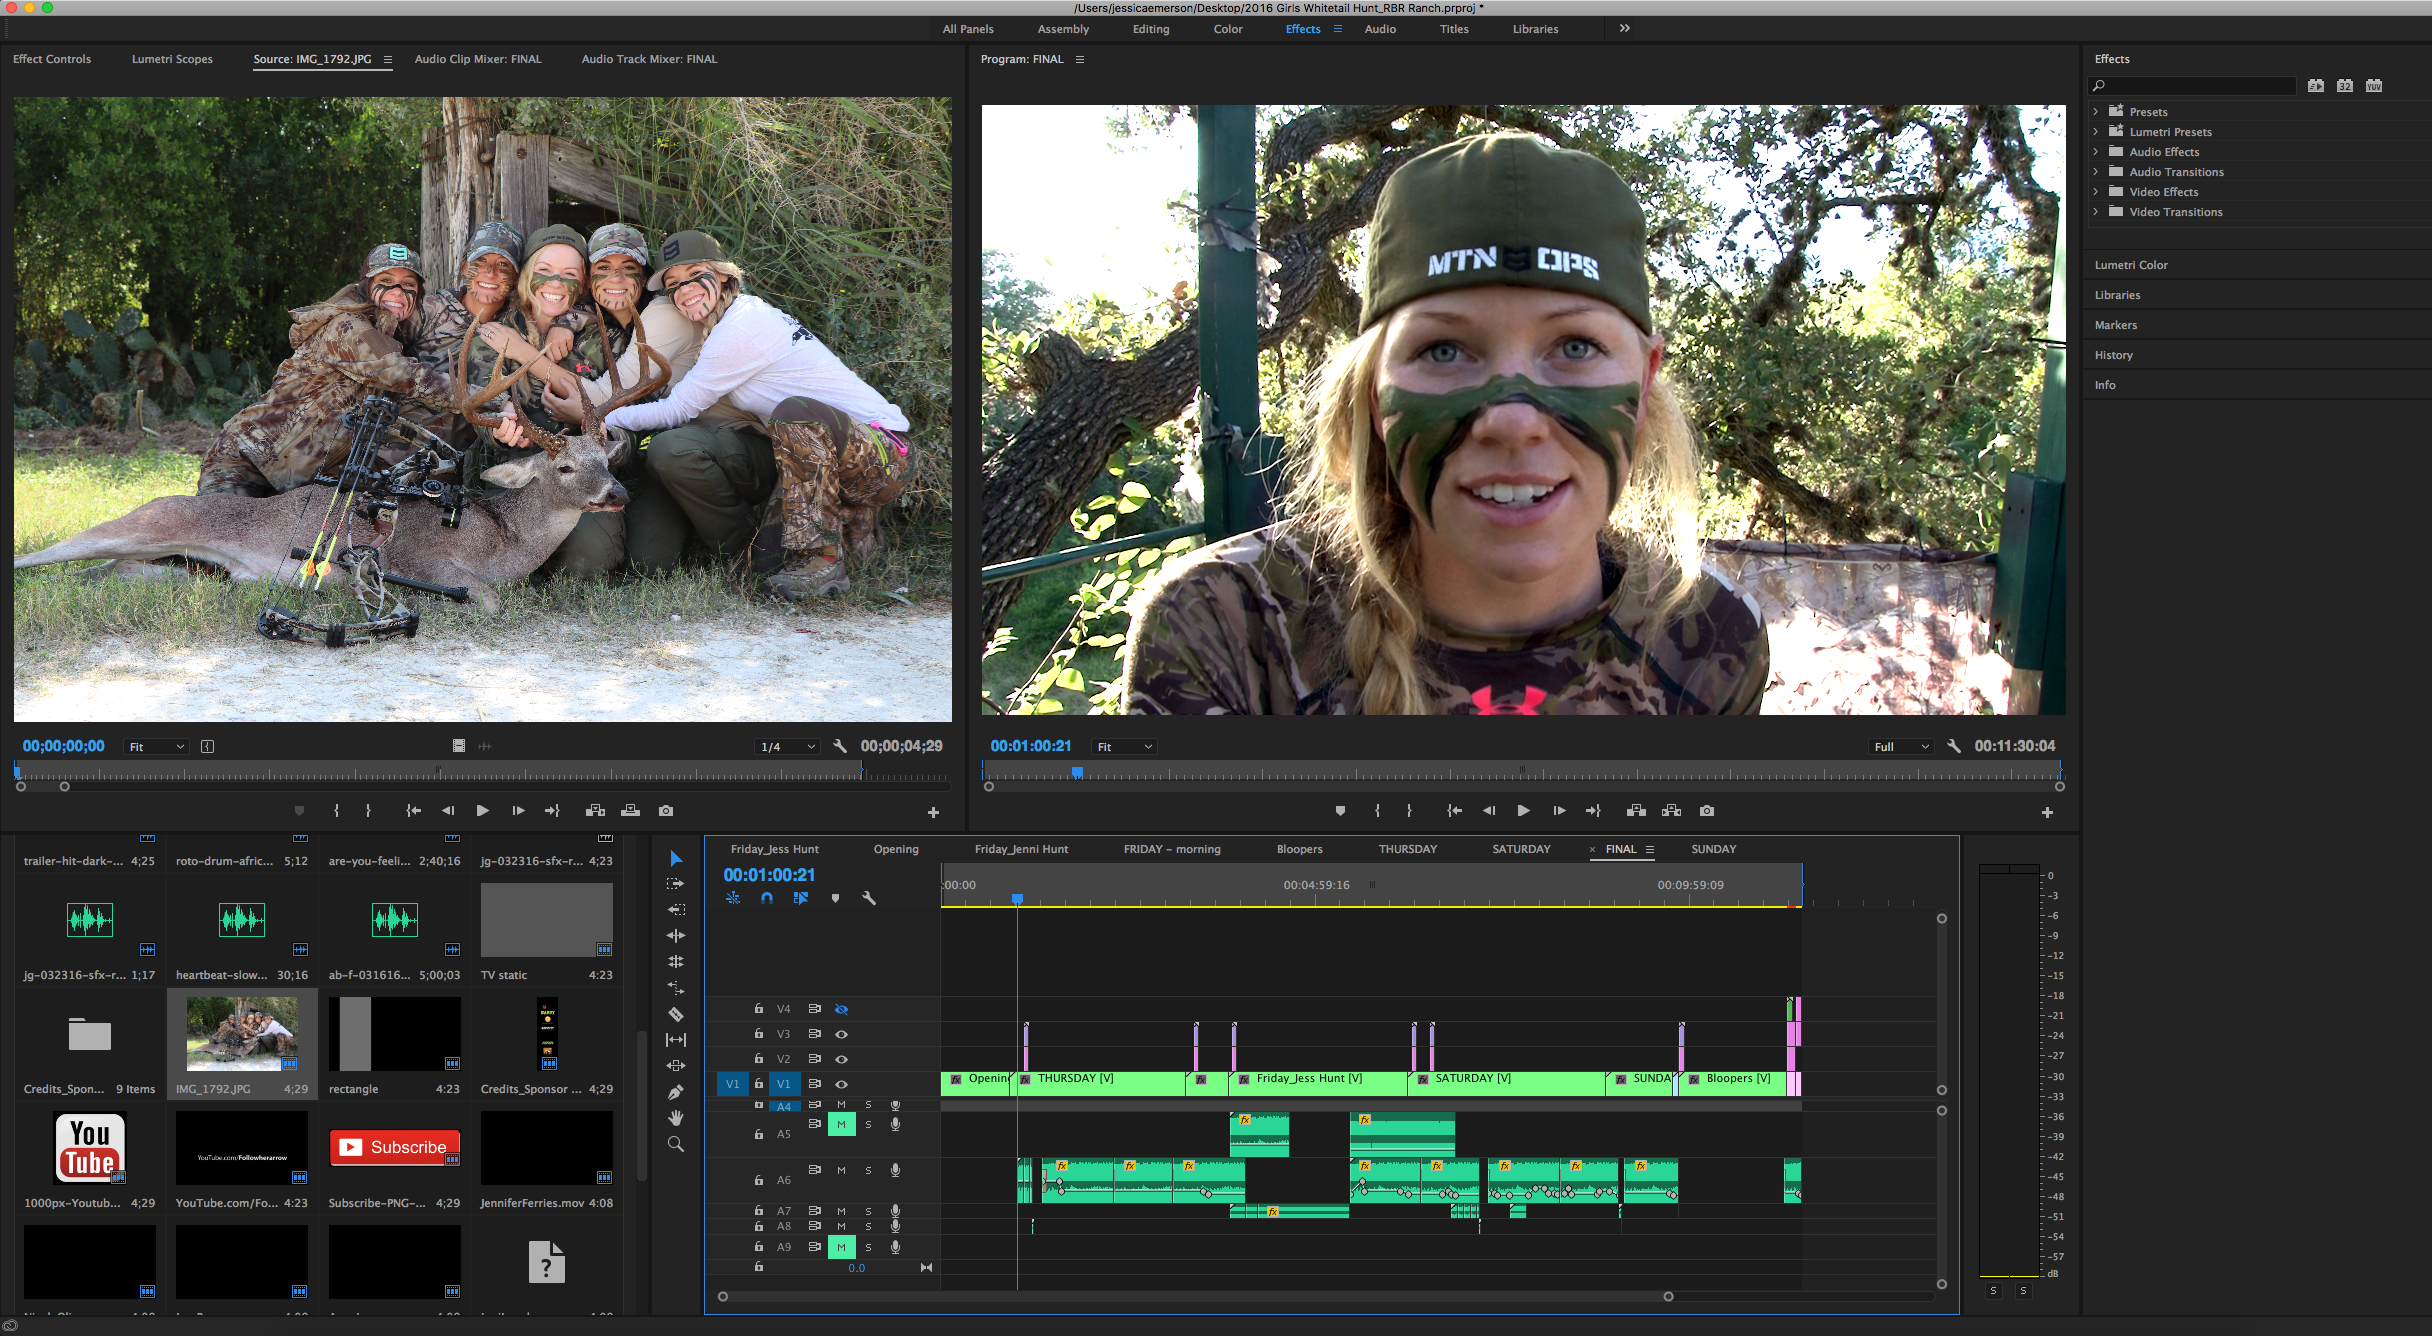 fha_blog_outdoorfilming_07_v1.png